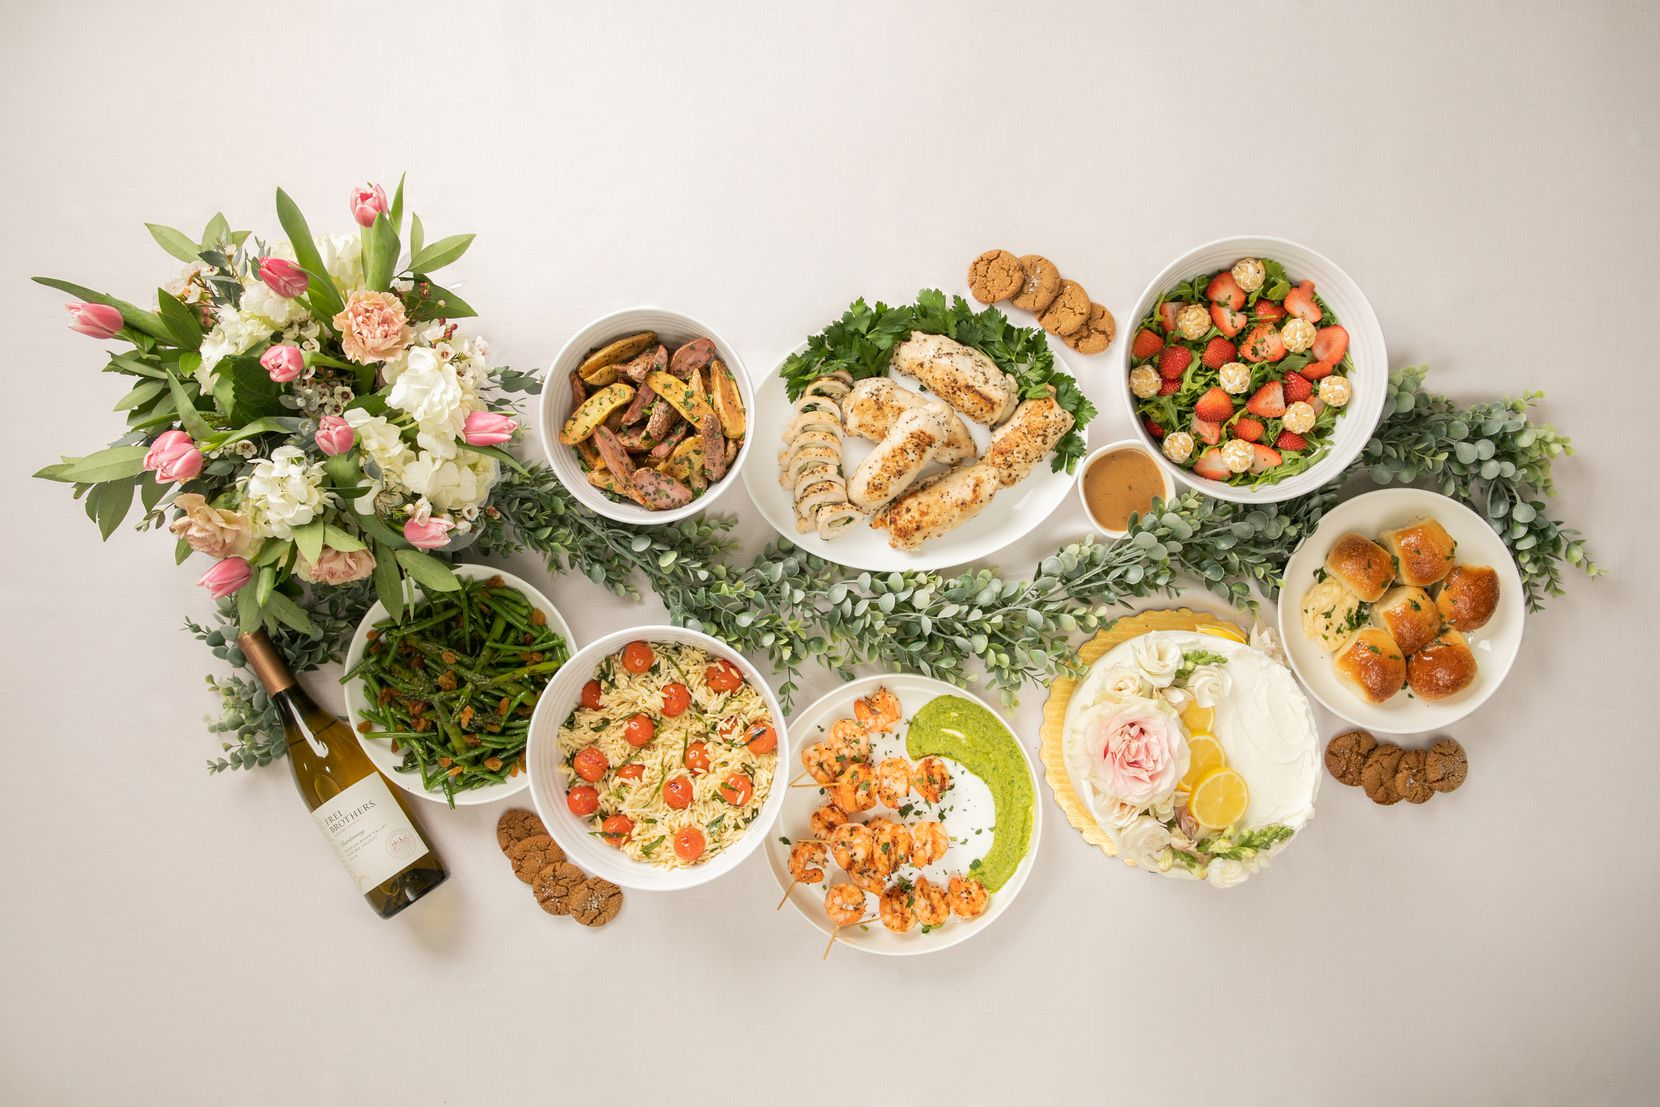 Vestals Catering serves Mother's Day menu that is ready to reheat.